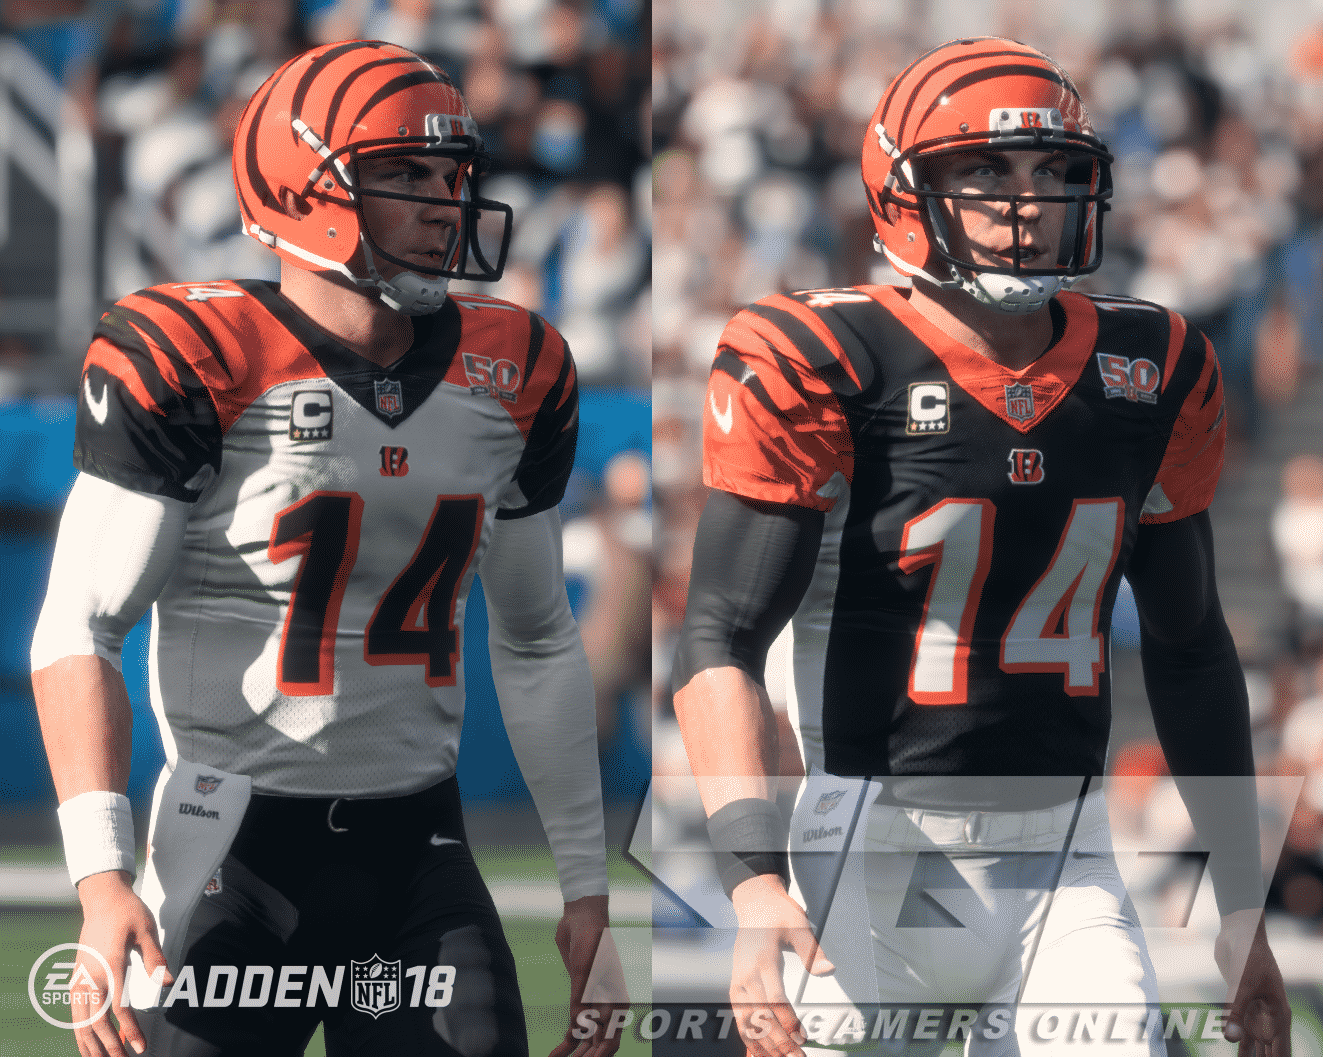 Home Upgrades That Are Totally Worth It Madden NFL 18 Player Likeness: A Behind The Scenes Look ...